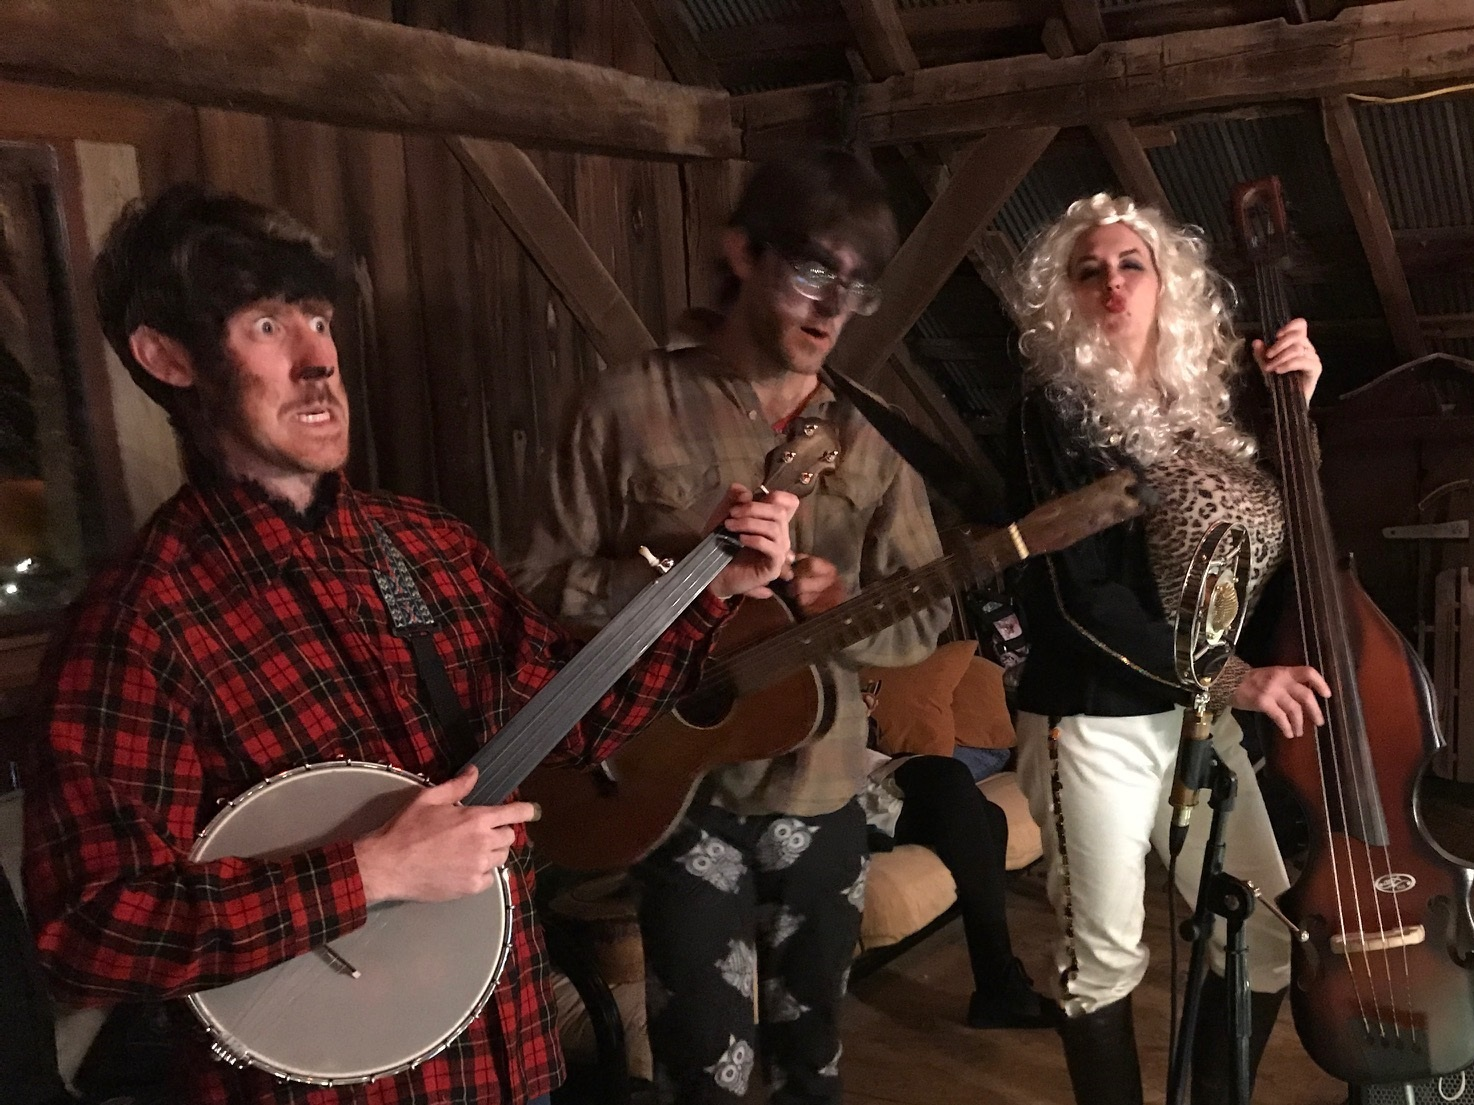 Old Time Halloween Jam with Dali Parton & New Hoosier Broadcasters